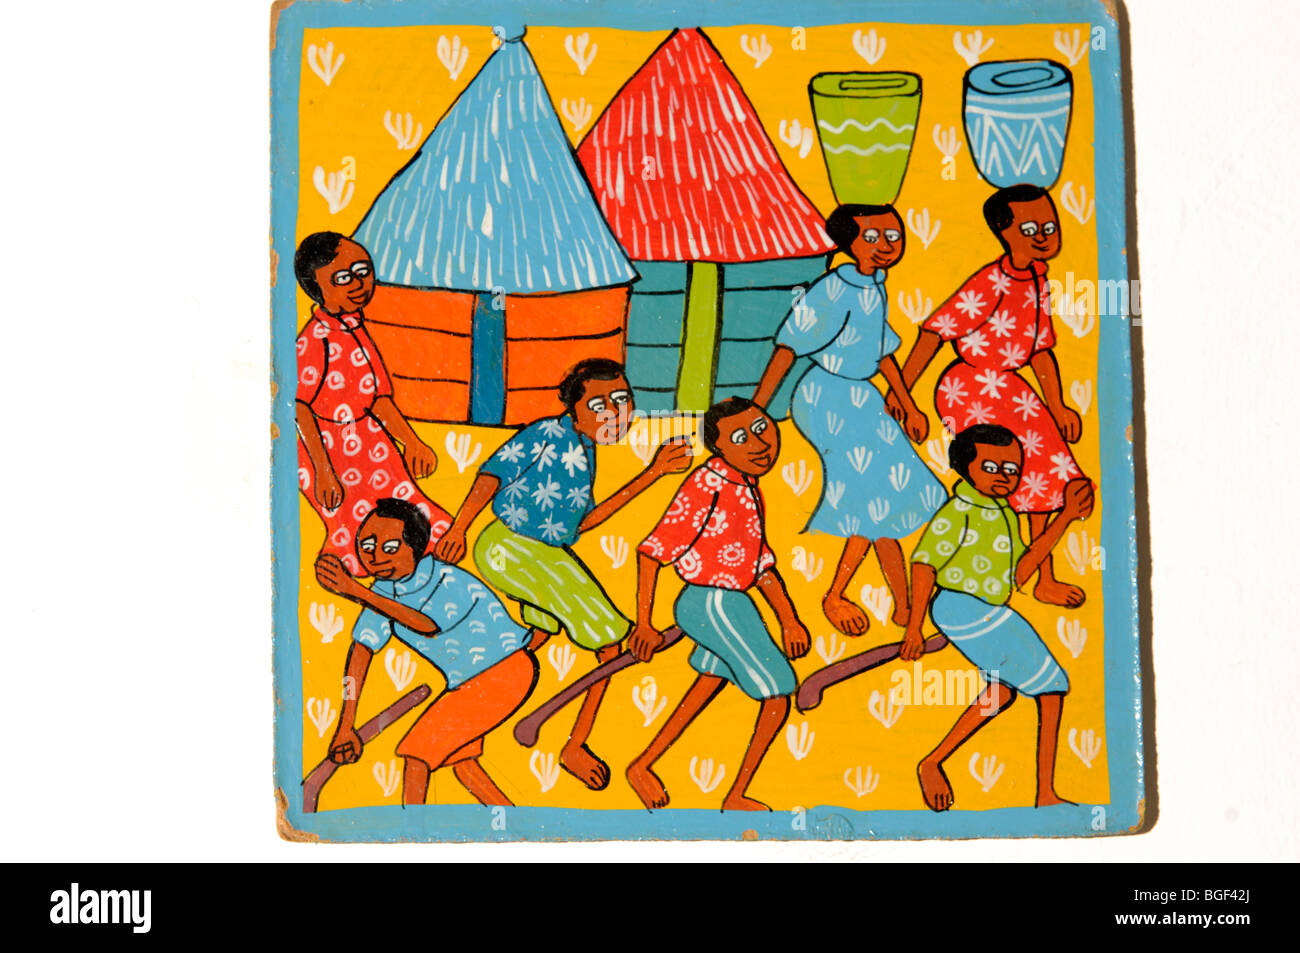 naive tribal art from Lusaka, Zambia - Stock Image